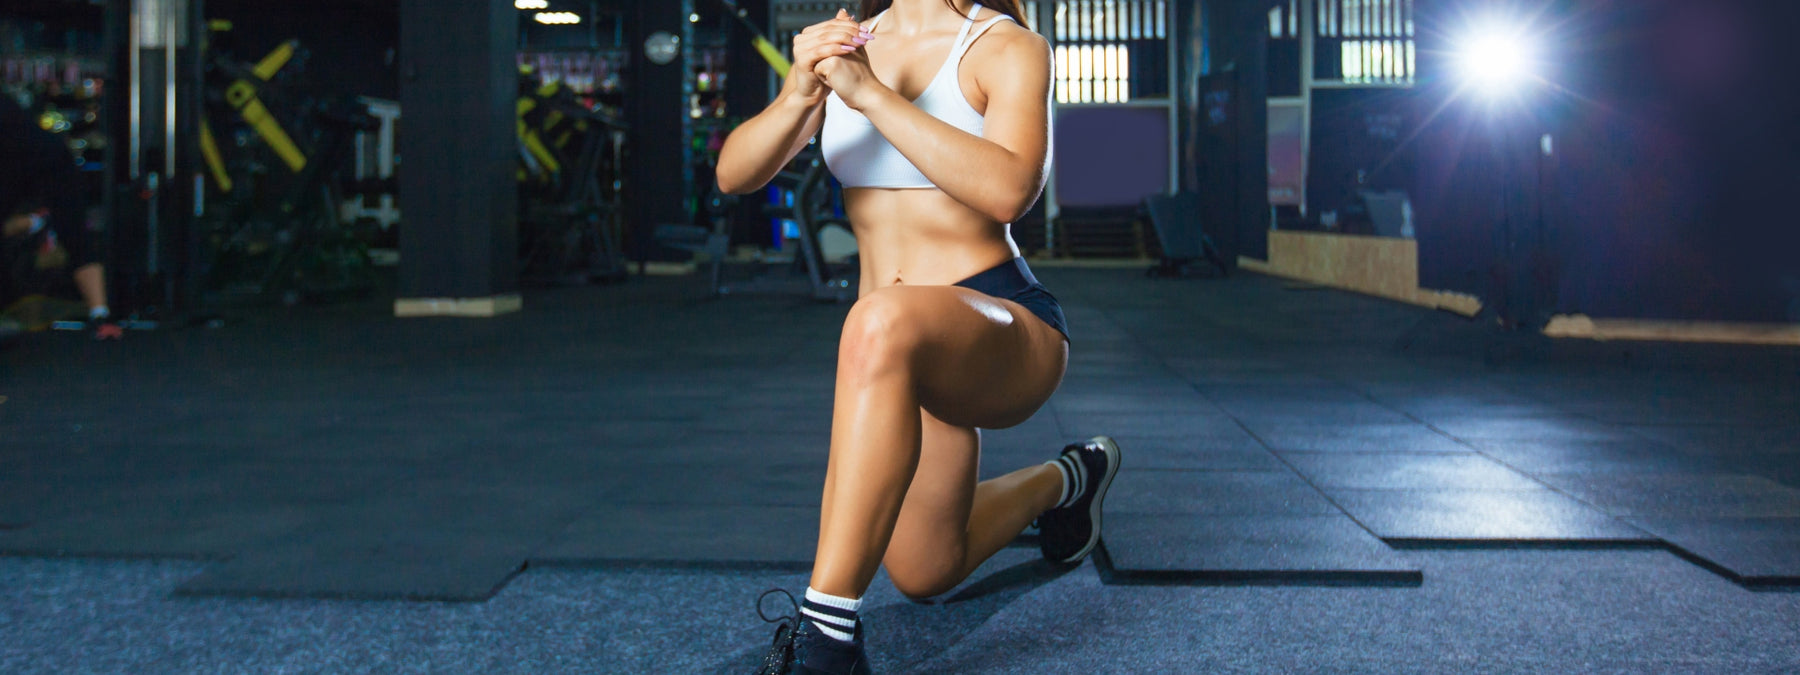 10 Lunge Variations to up Your Leg Workout Intensity